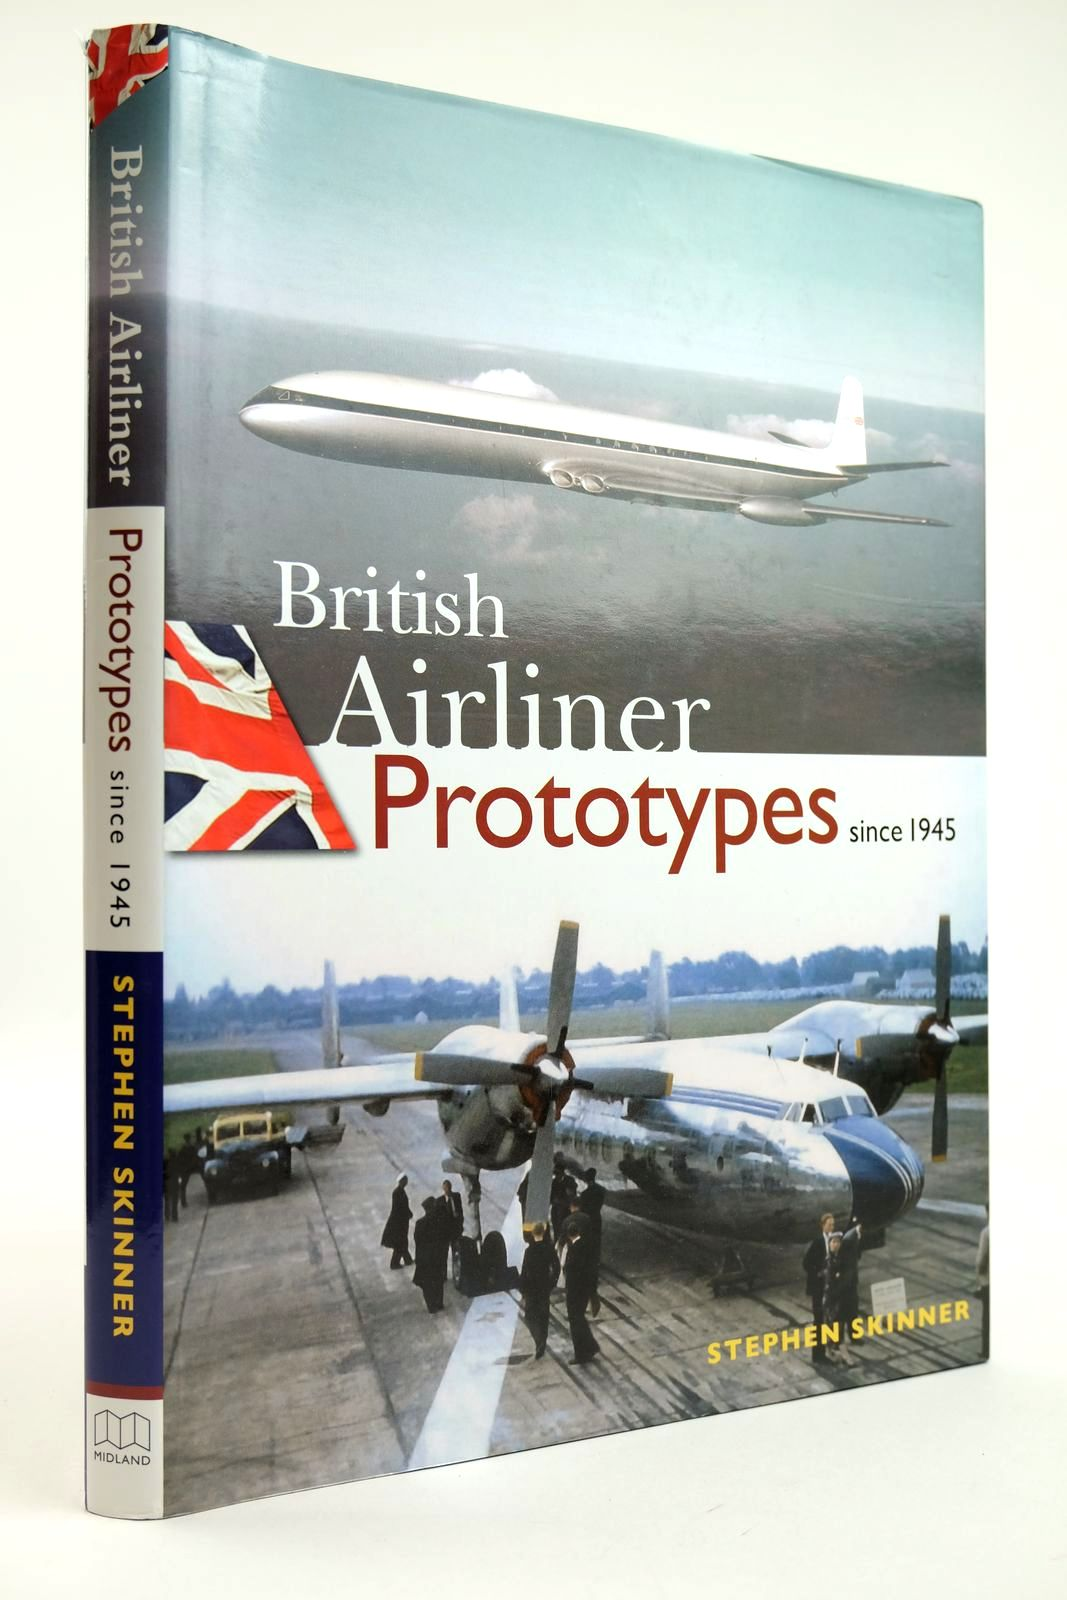 Photo of BRITISH AIRLINER PROTOTYPES SINCE 1945 written by Skinner, Stephen published by Midland Publishing (STOCK CODE: 2132211)  for sale by Stella & Rose's Books